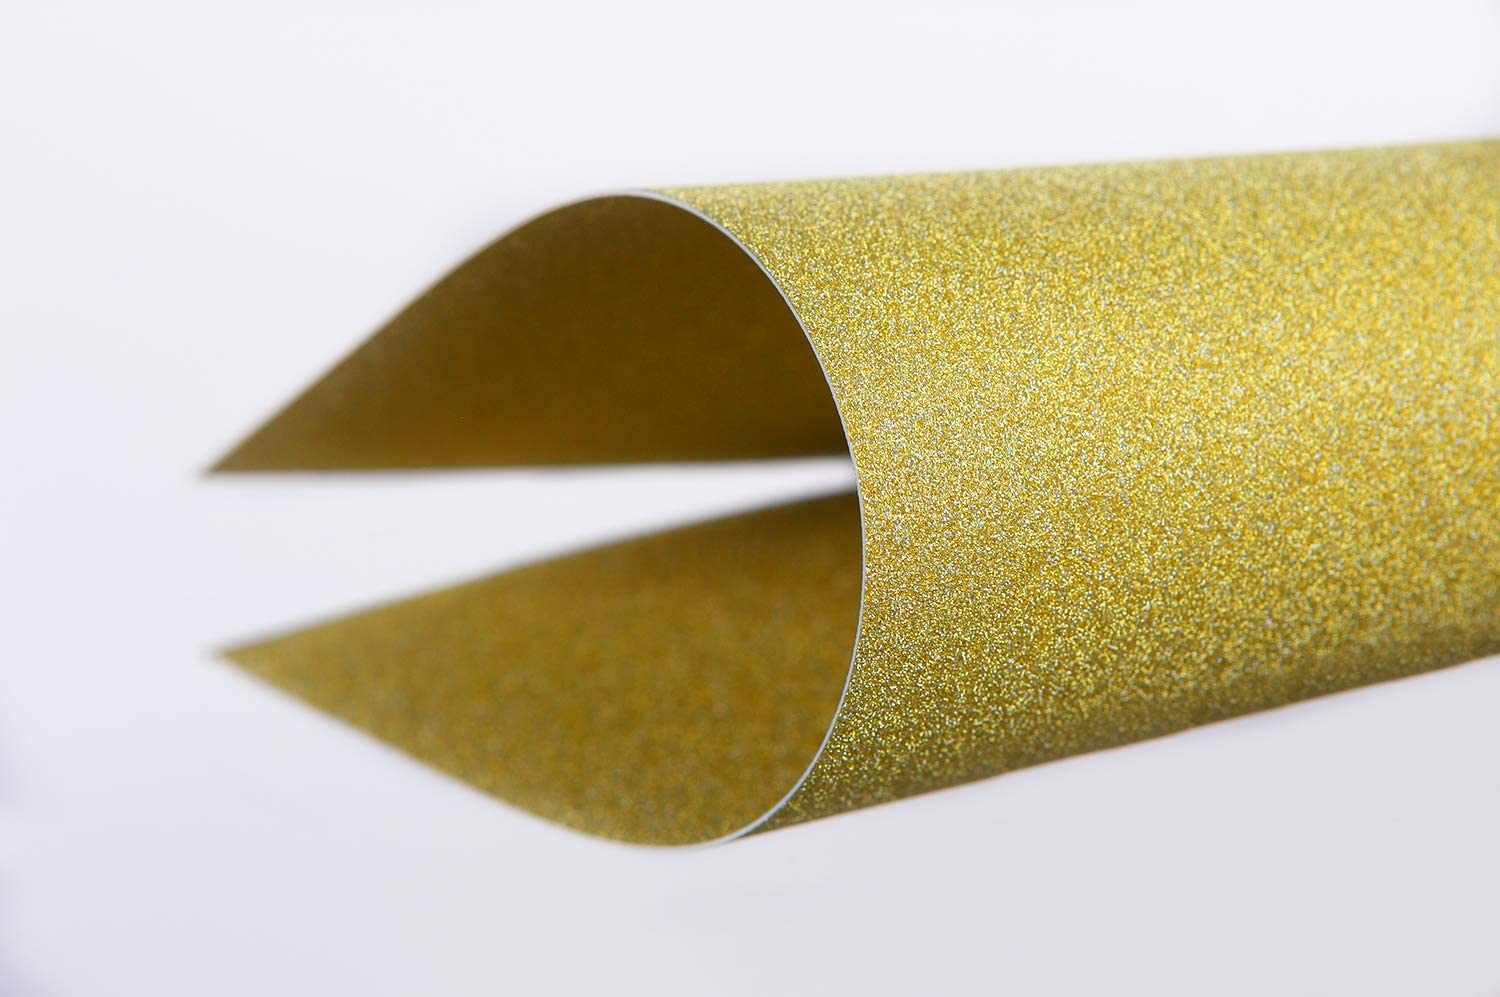 30-Pack Gold Glitter Paper for DIY Craft Projects 110 lb Cover Stock 8 x 12 inches Birthday Party Decorations Gold Glitter Cardstock Scrapbook Double-Sided